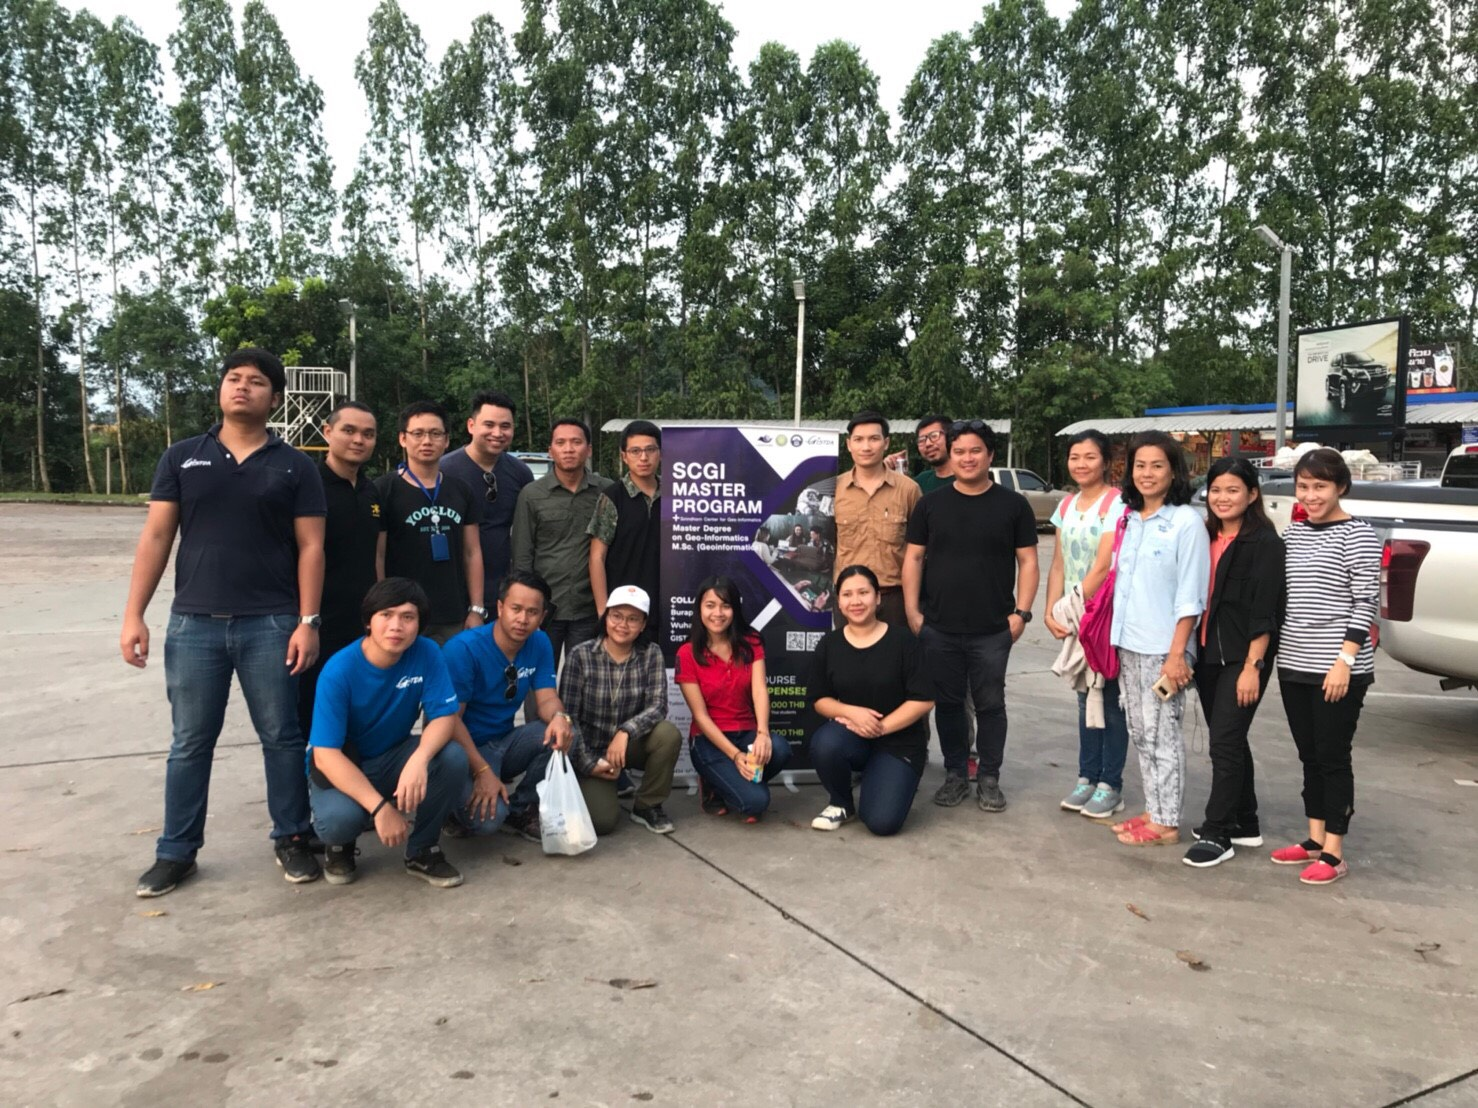 FIELD TRIP FOR SCGI MASTER PROGRAM STUDENTS